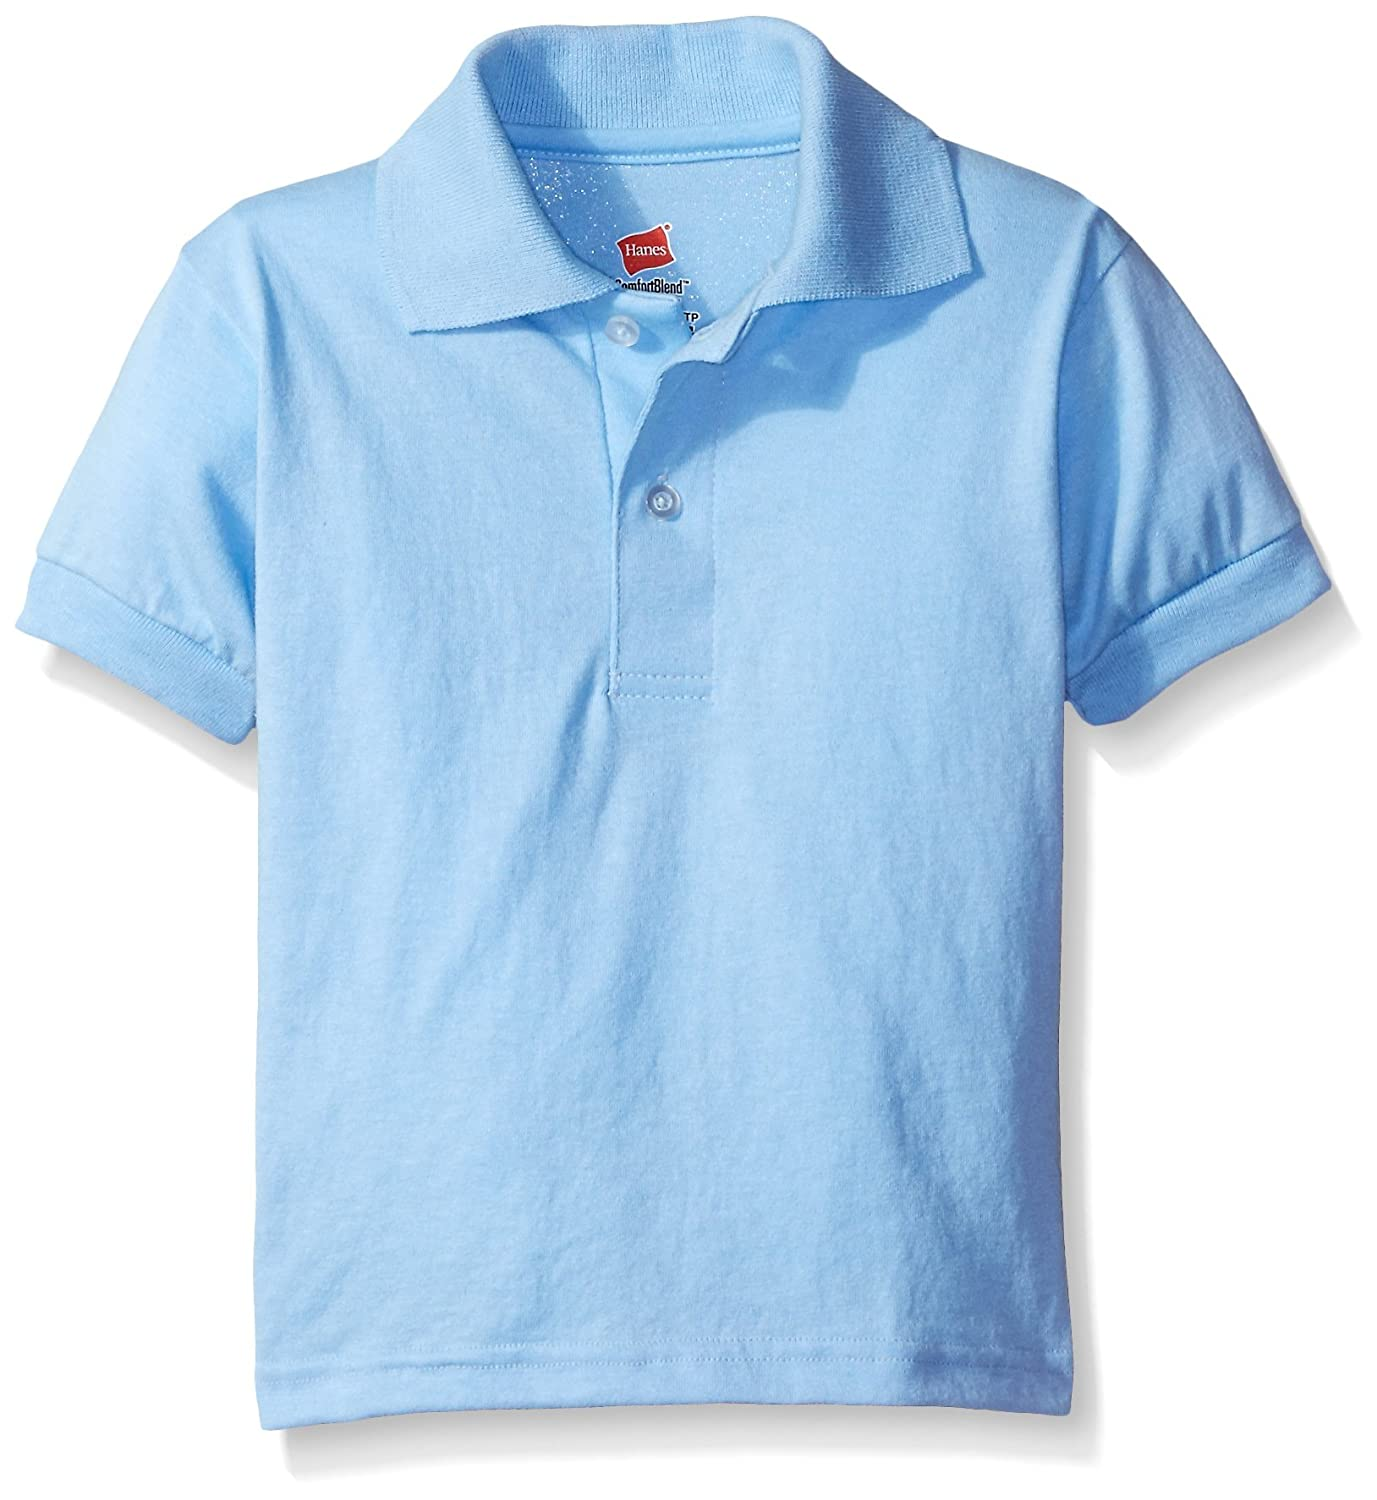 Hanes Big Boys' Short Sleeve Eco Smart Sport Shirt Hanes - Boys 8-20 O054Y